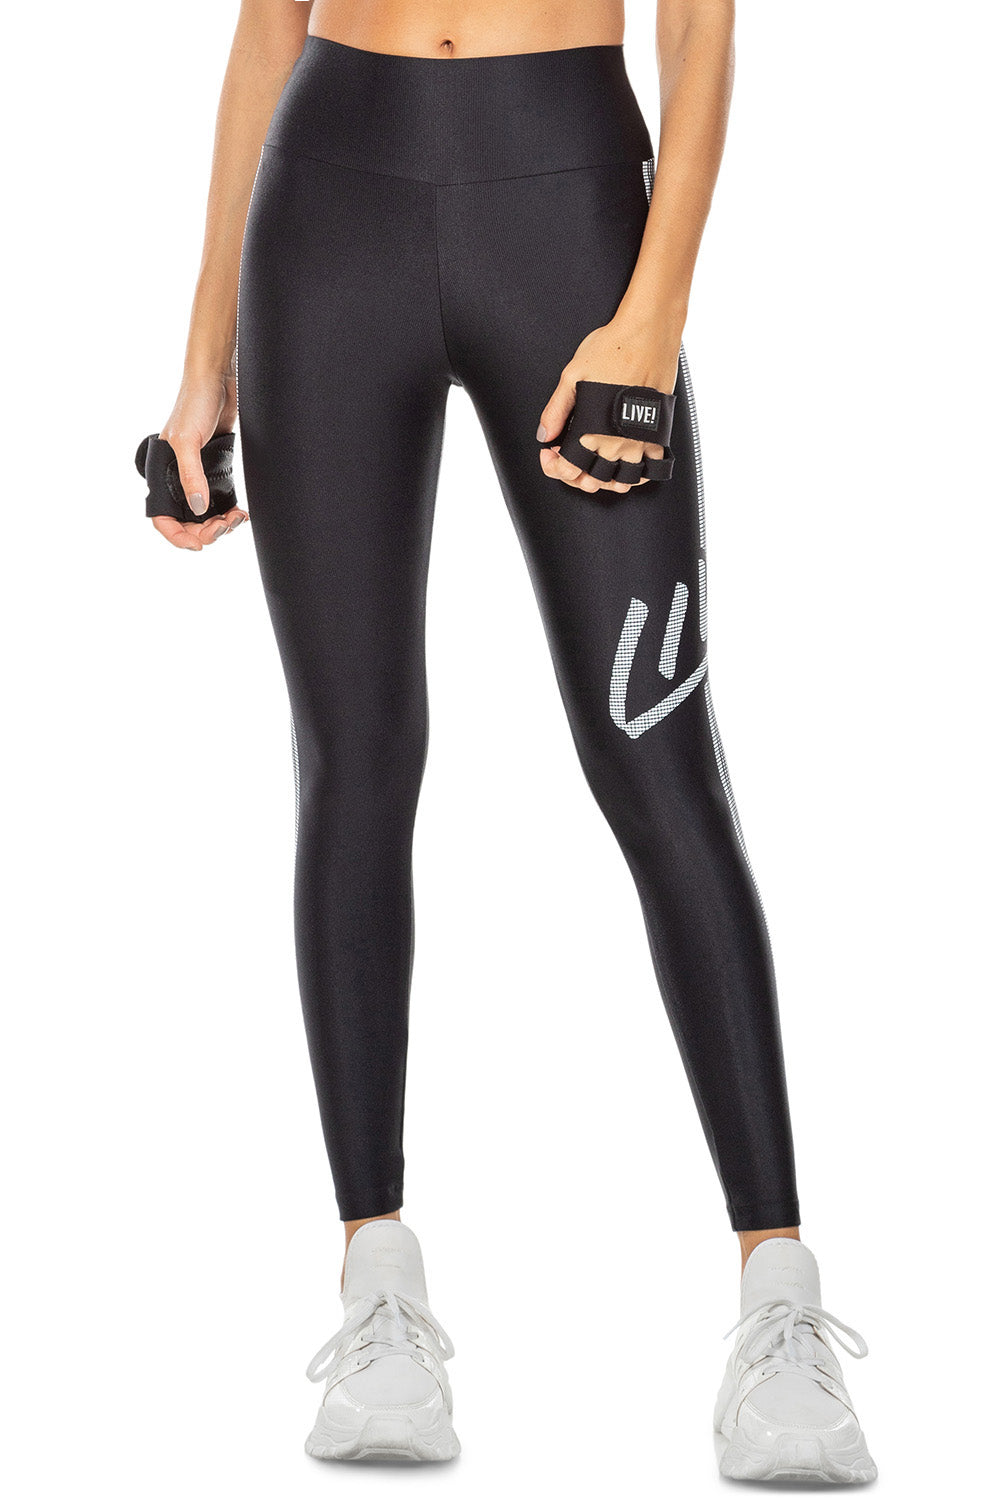 LIVE! Signature Legging 1